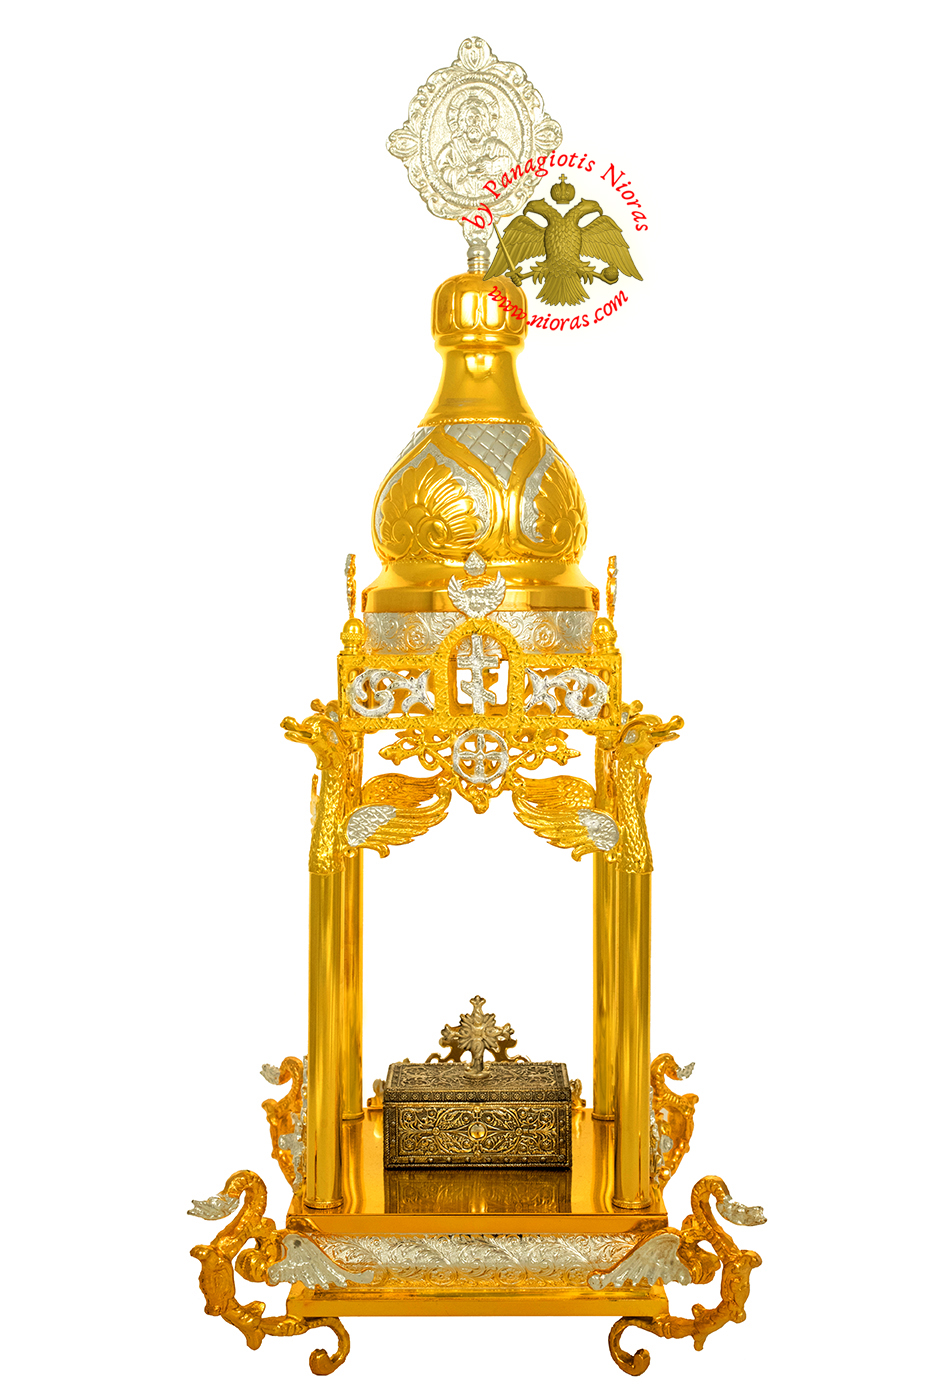 Holy Table Orthodox Tabernacle Columns with Dragons Metal Decorations Gold and Silver Plated